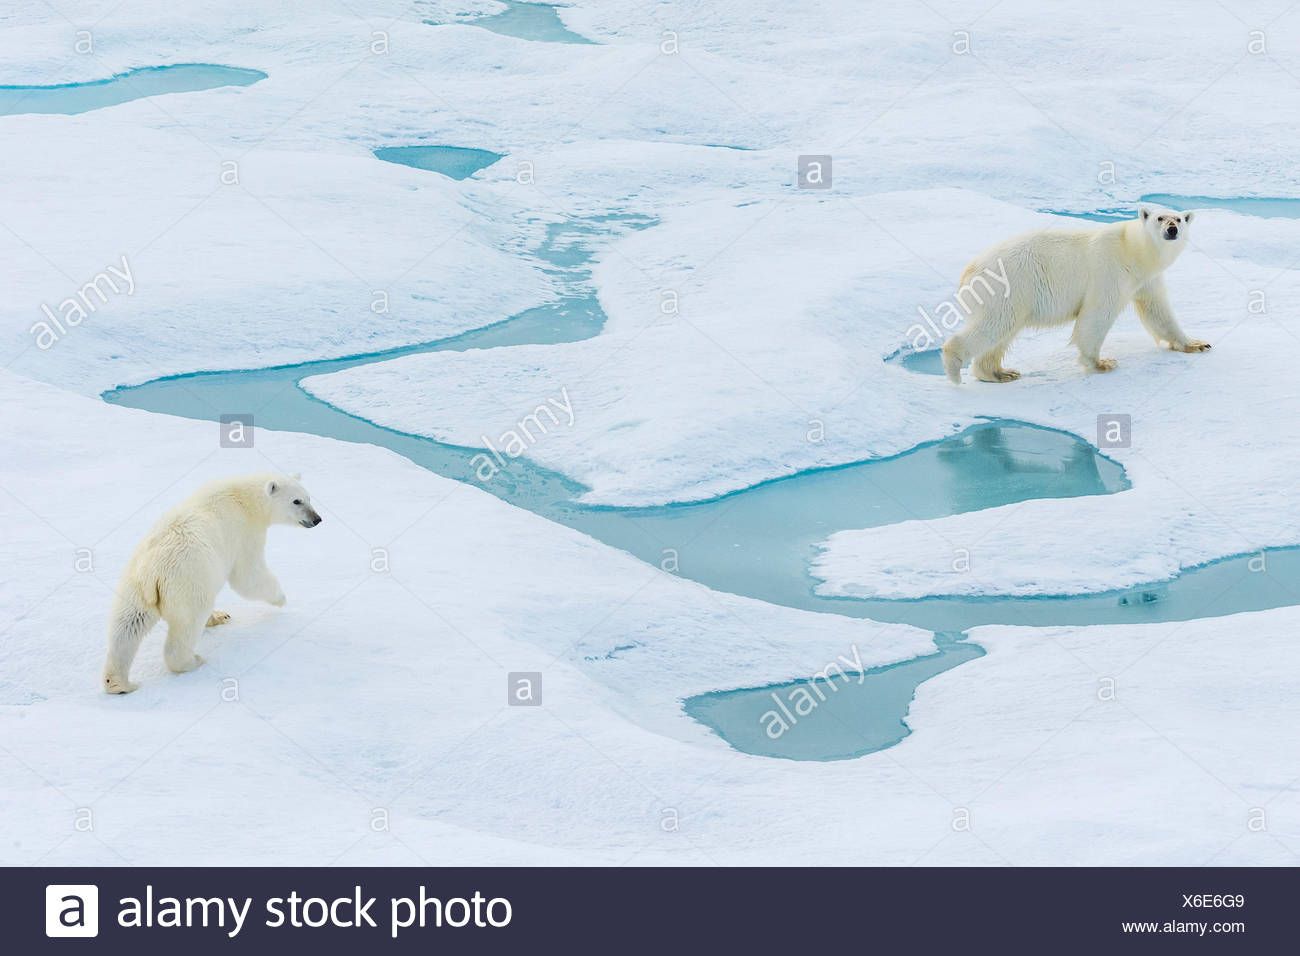 Mother and cub, polar bears (Ursus maritimus) wander across pack ice in the Canadian Arctic. - Stock Image